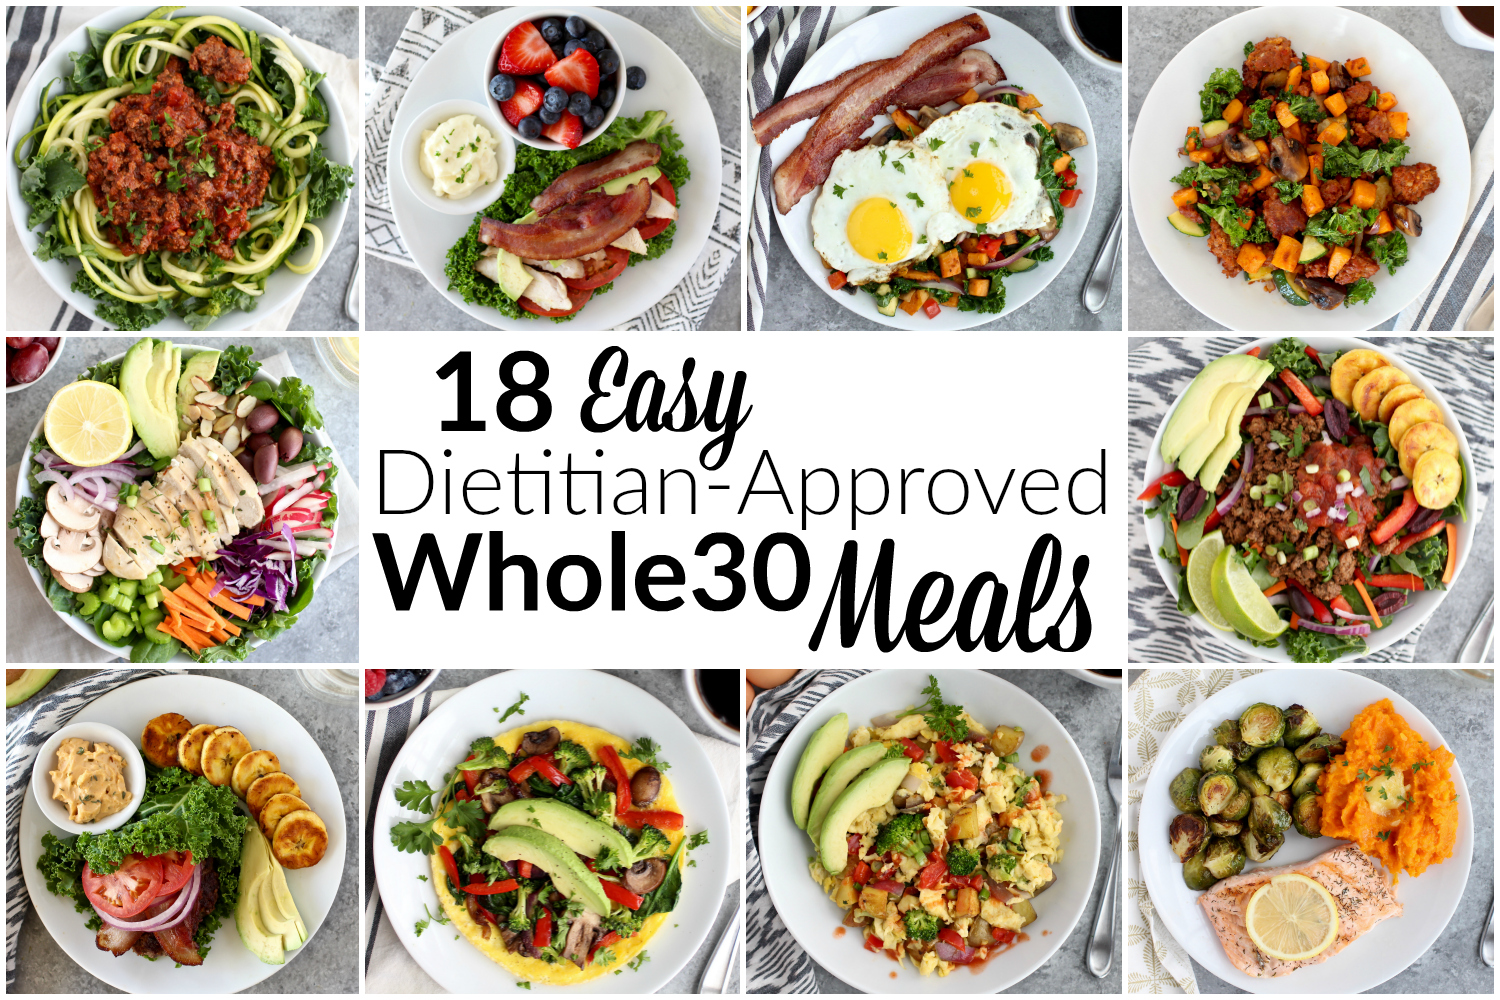 18 Easy Dietitian-Approved Whole30 Meals - The Real Food Dietitians